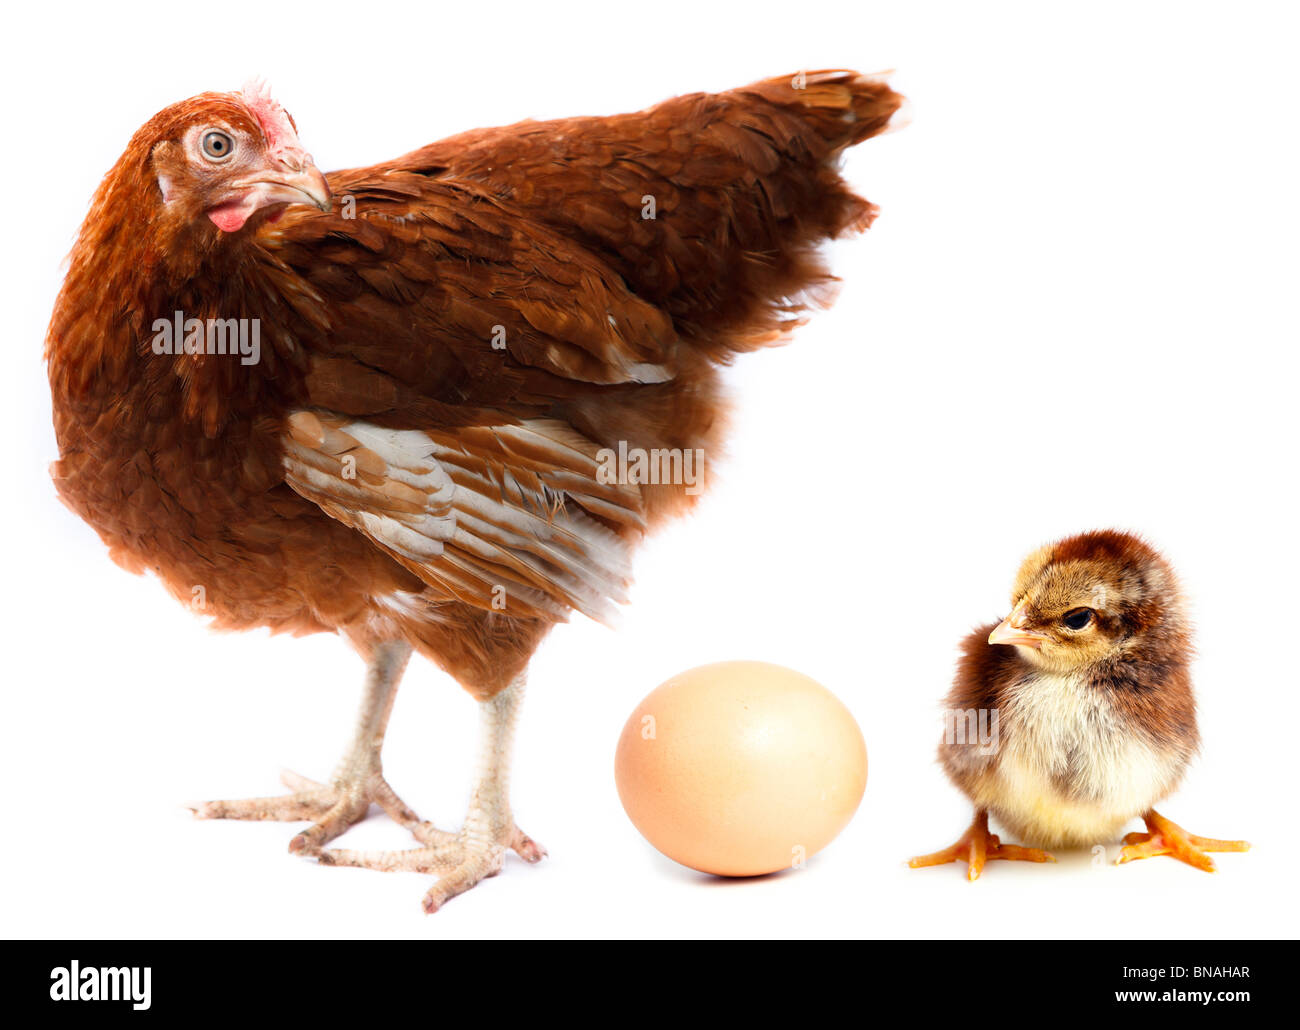 Hen, chick and egg in studio against a white background. - Stock Image